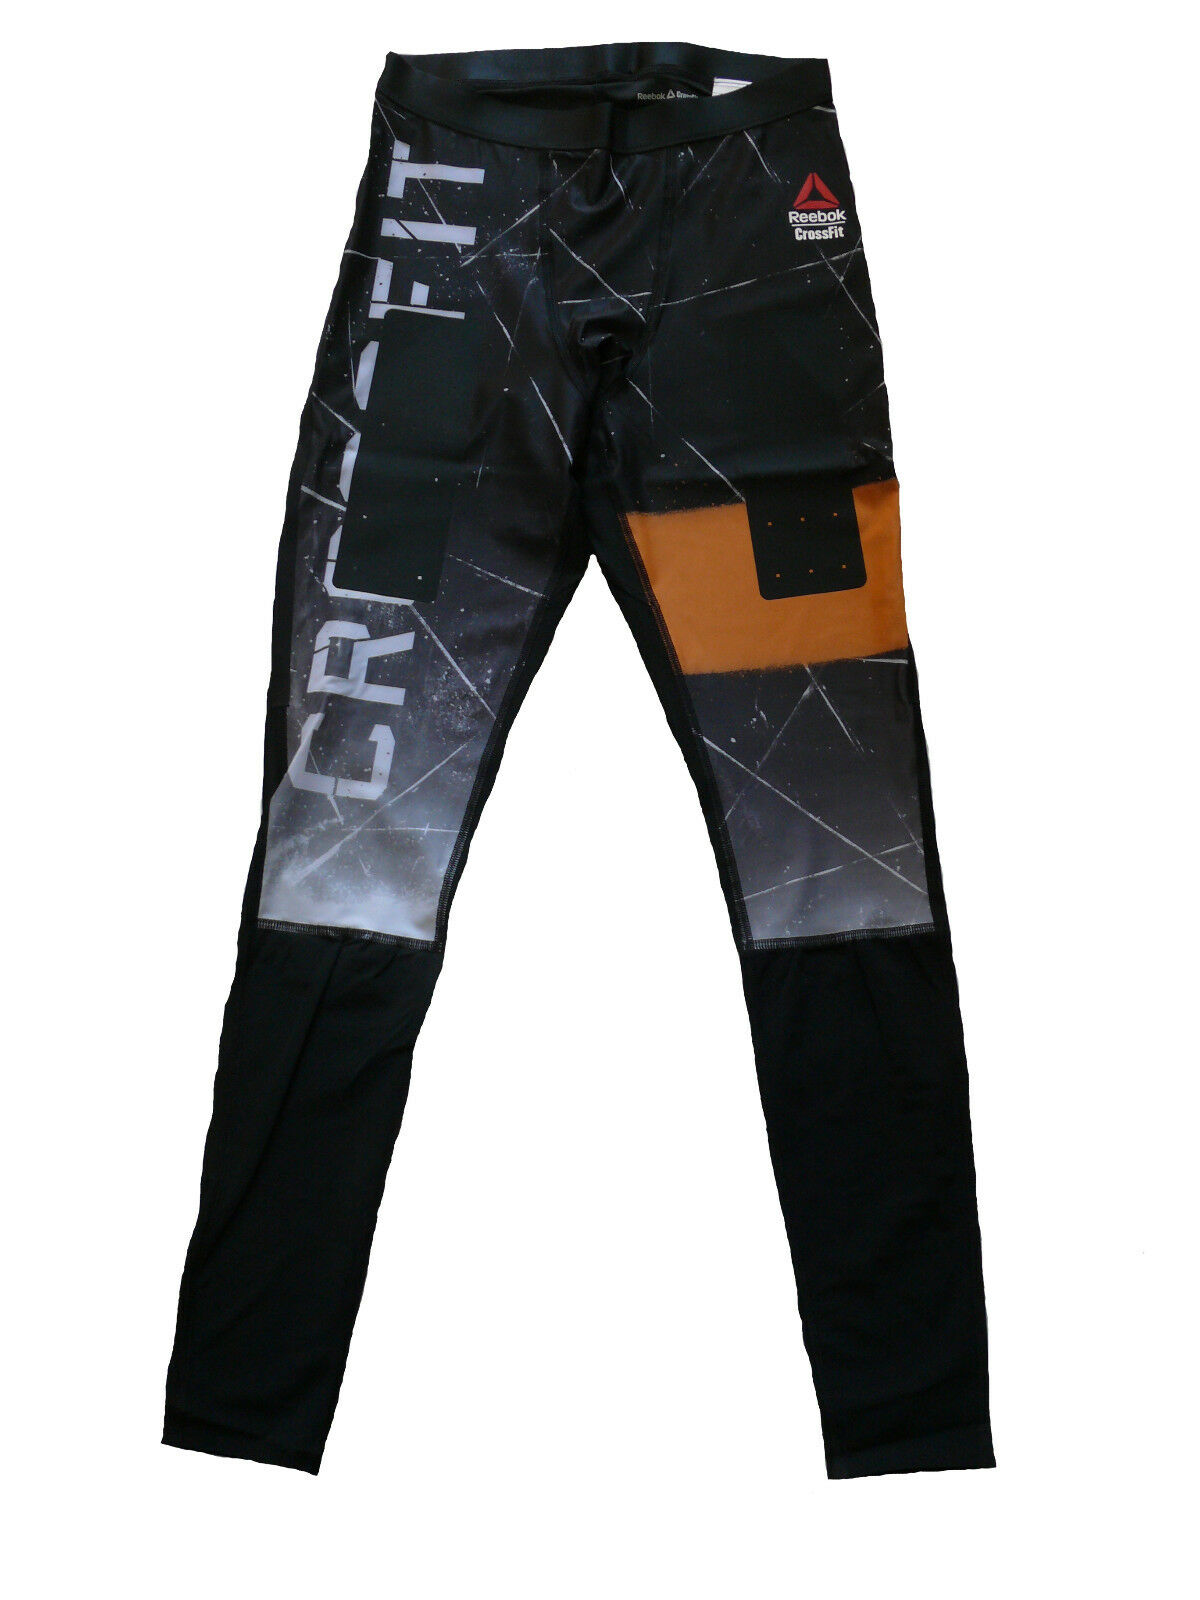 Reebok Crossfit Men's Tights GR.M NEW B45188